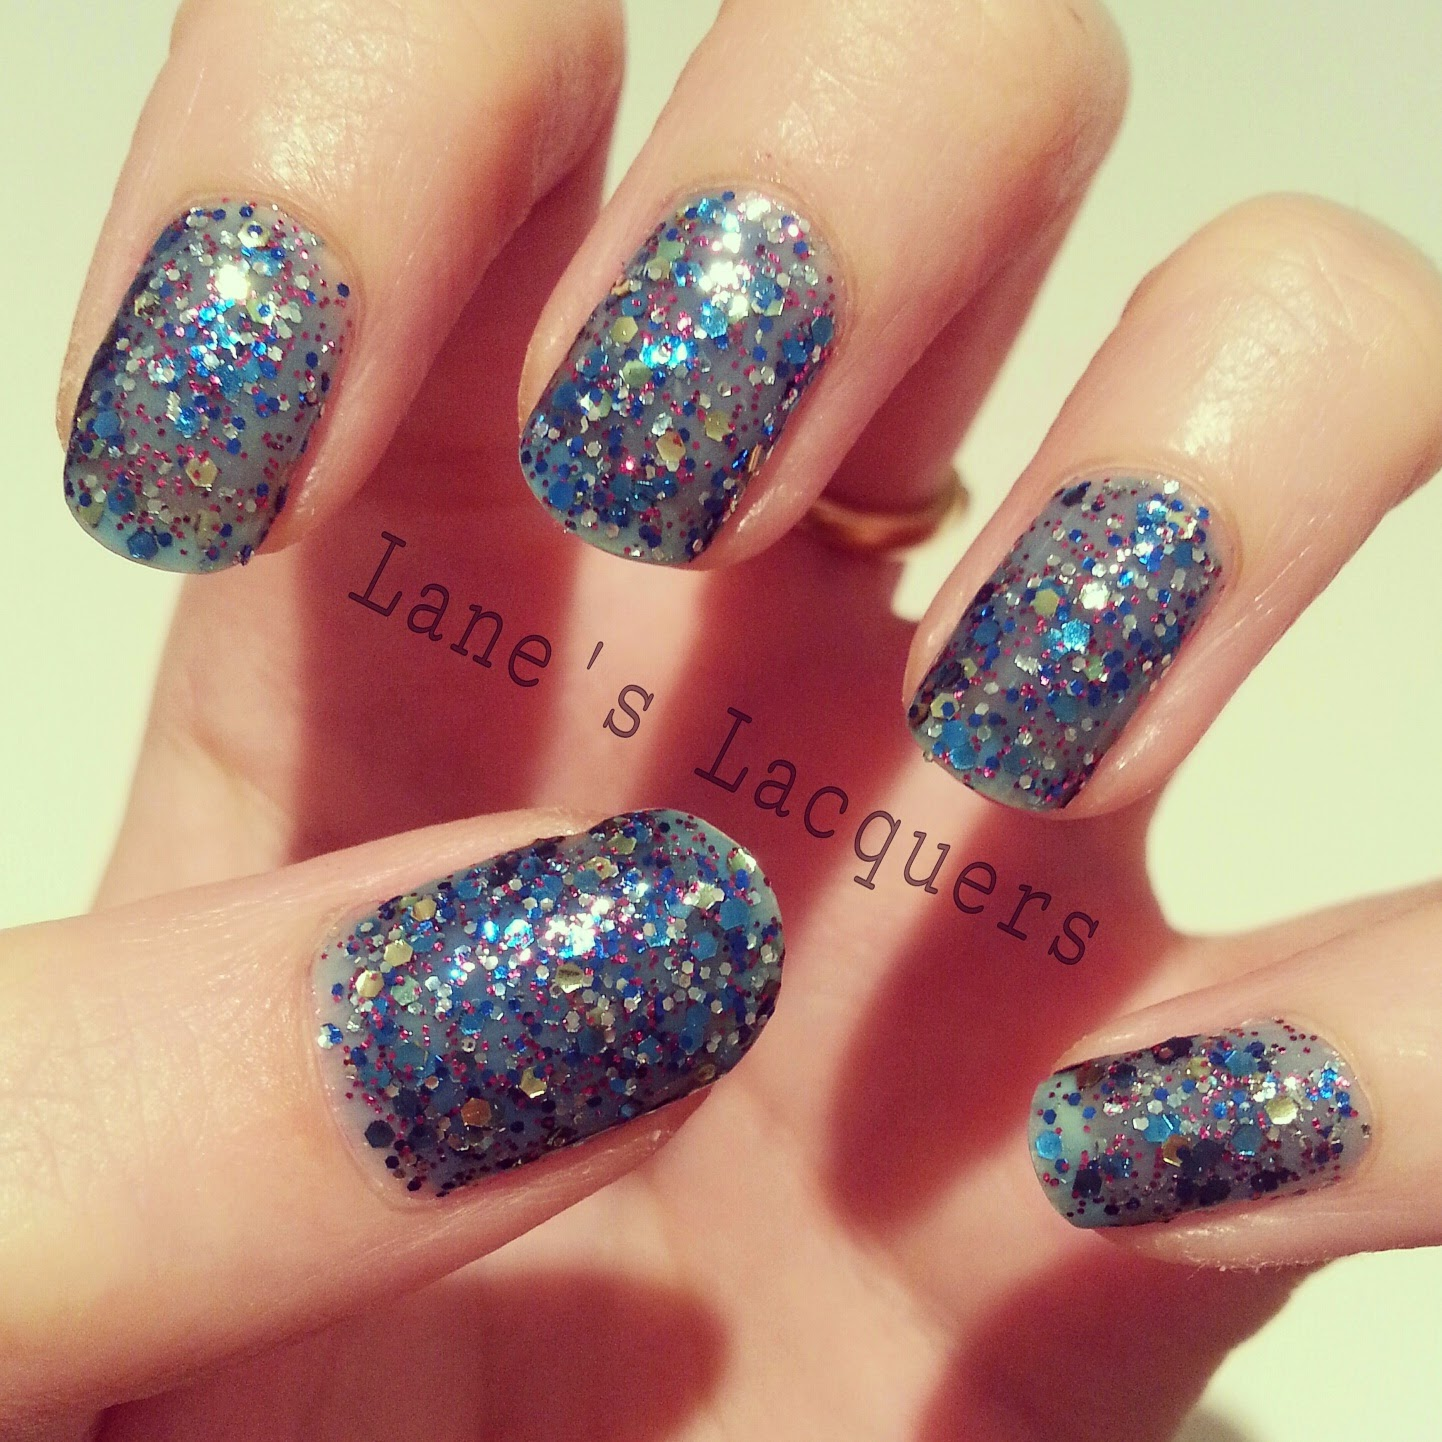 maybelline-colorshow-be-brilliant-skyline-blue-swatch-nails